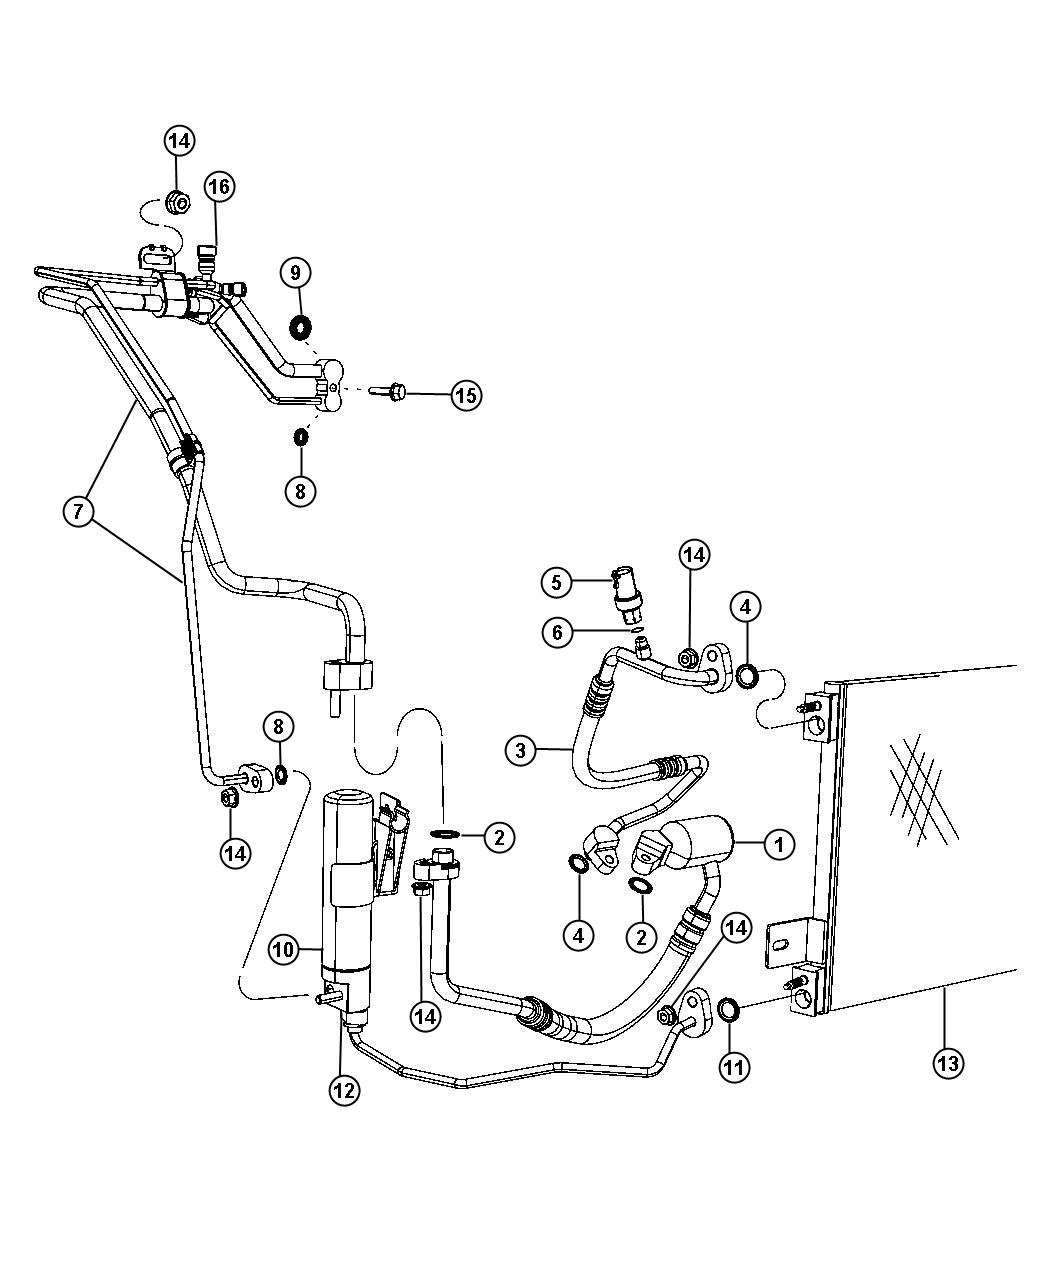 Jeep Compass Drier Receiver After 10 31 11 Up To